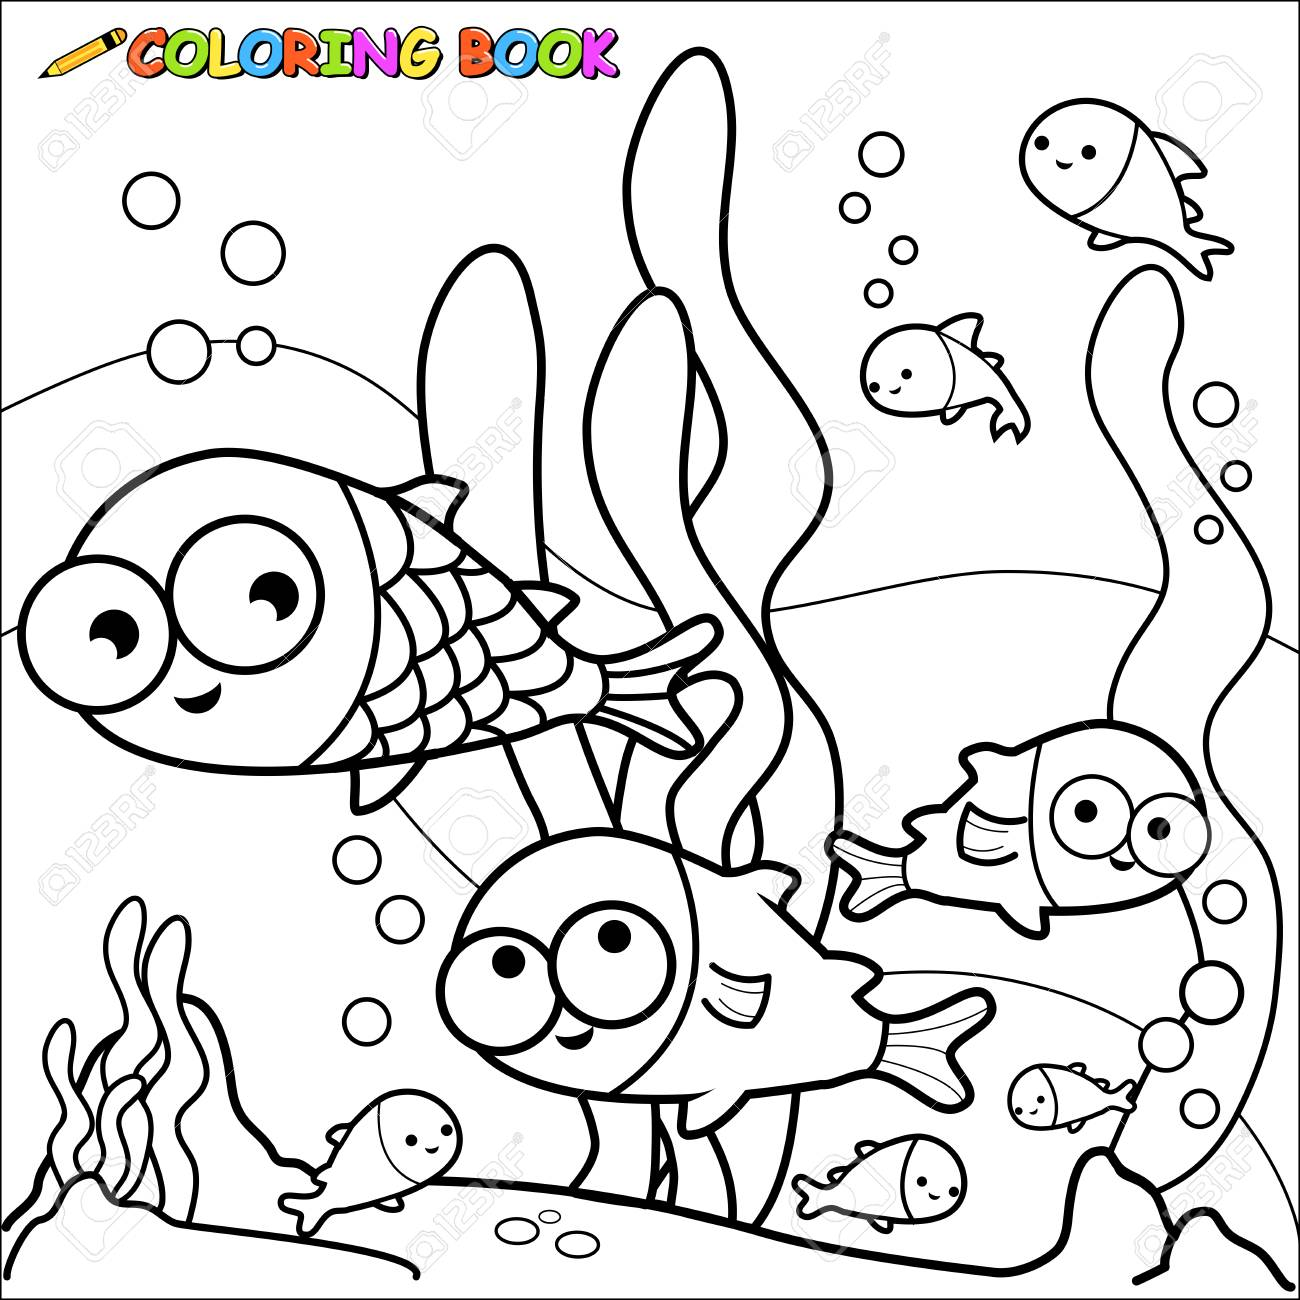 Black And White Outline Image Of Fish Underwater Coloring Book Page Stock Vector